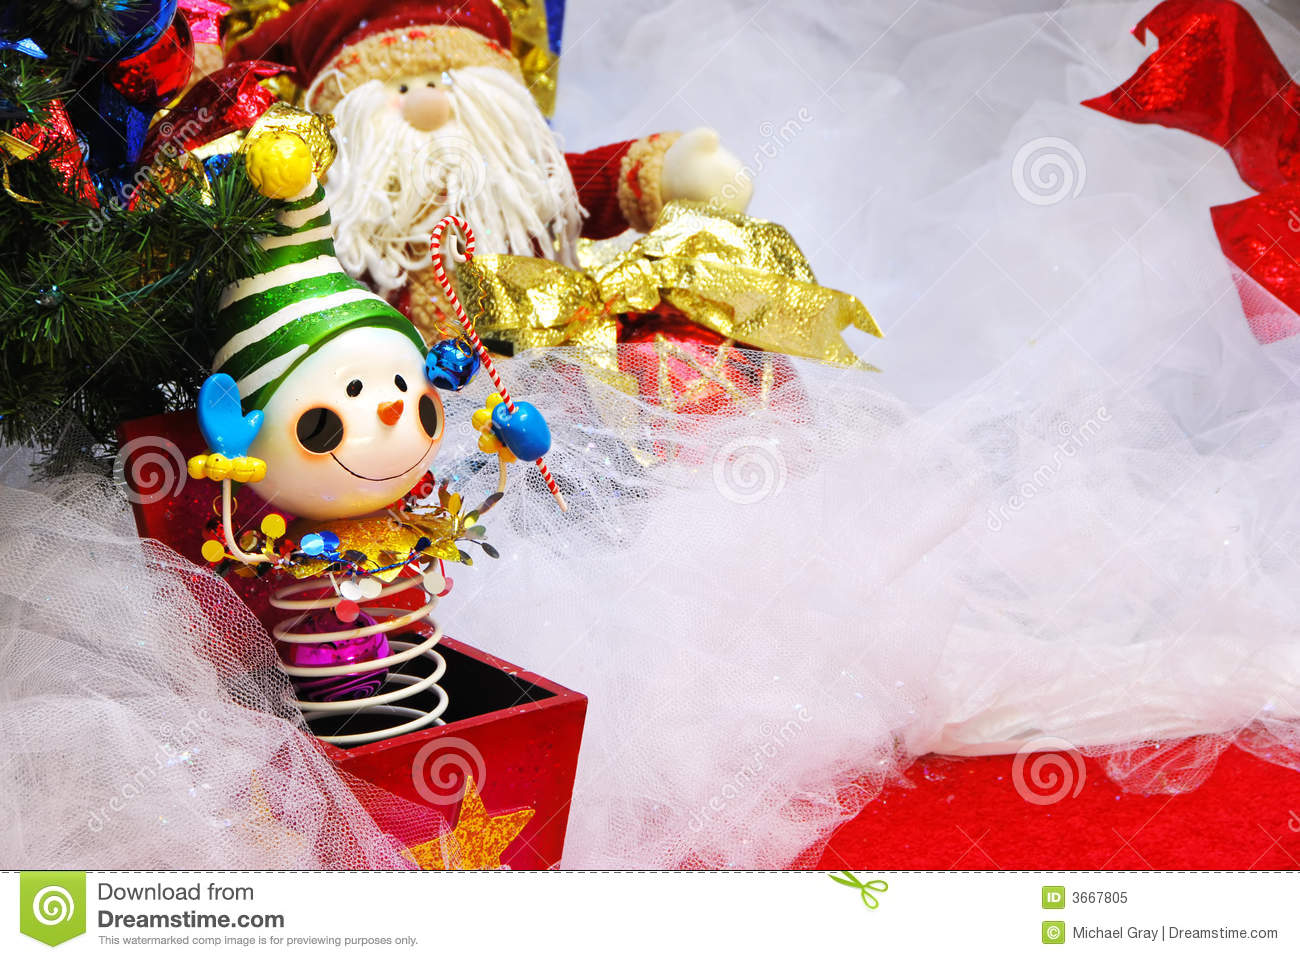 Christmas Jack In The Box Royalty Free Stock Photo - Image: 3667805